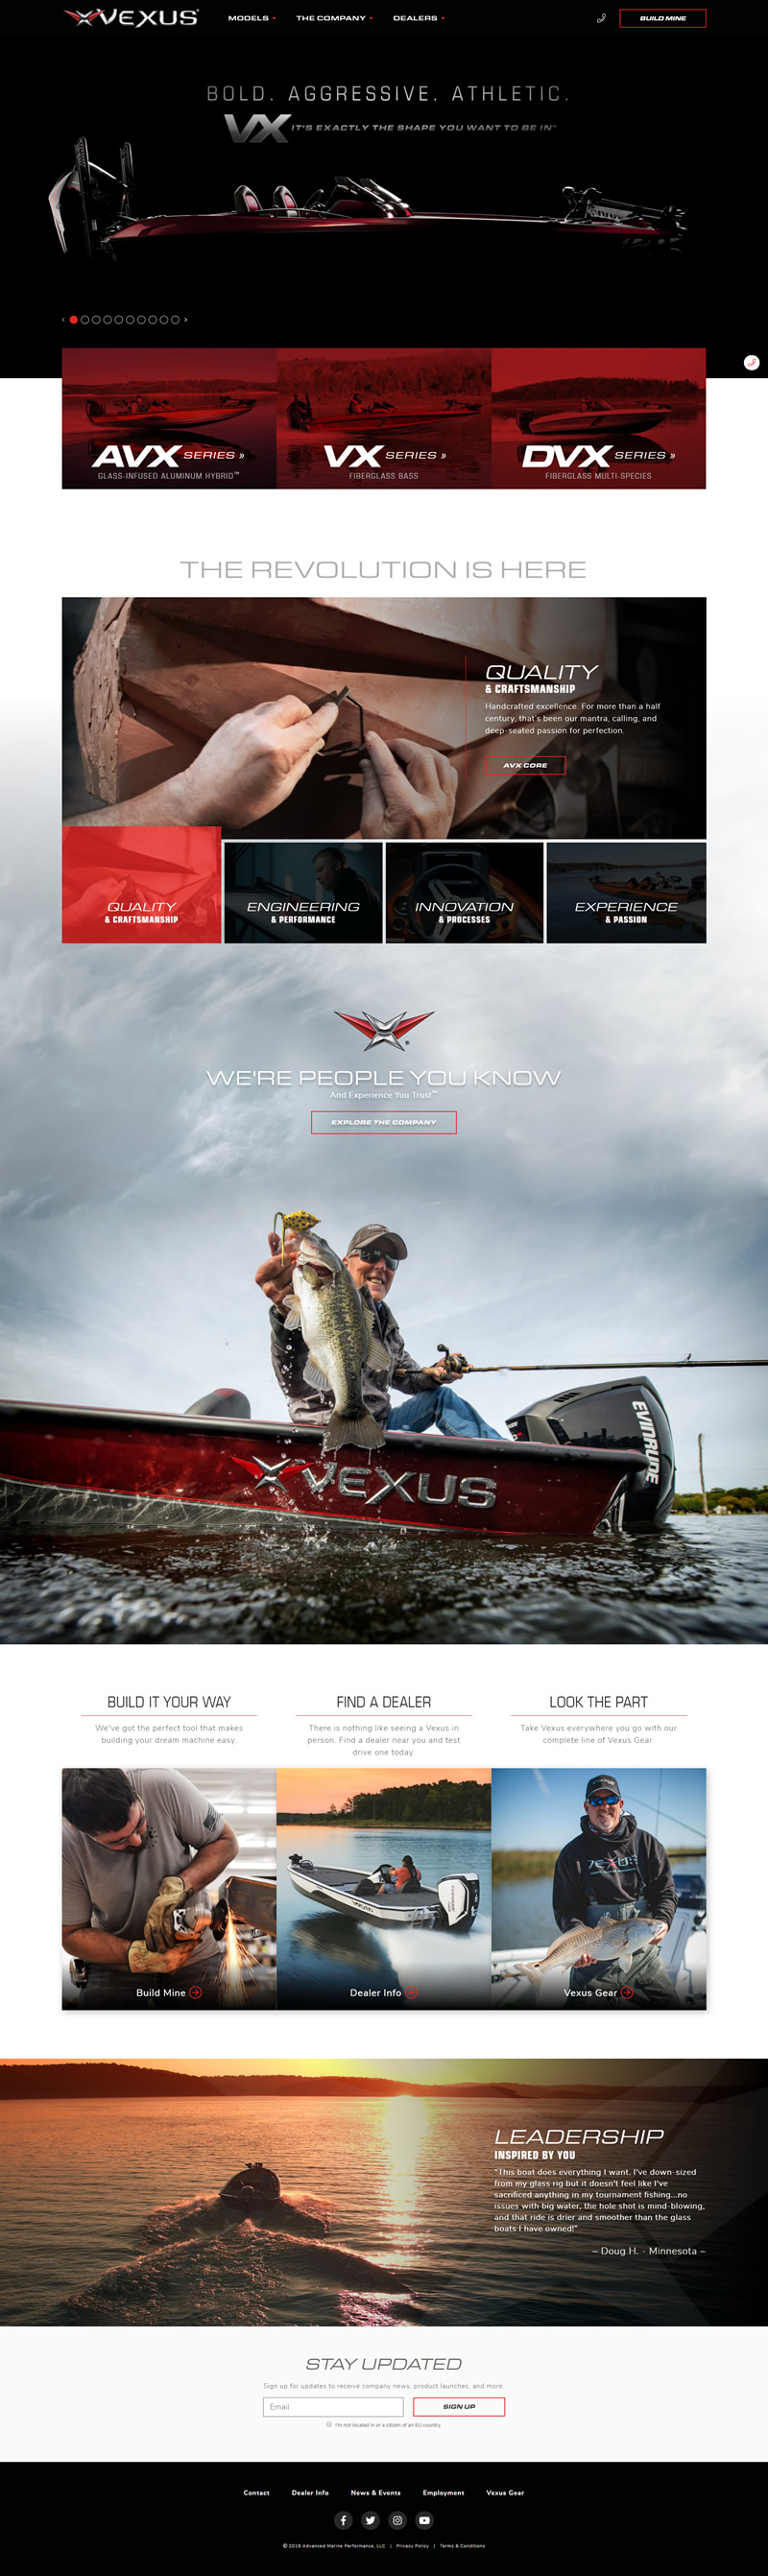 Vexus Boats Full Web Design Image